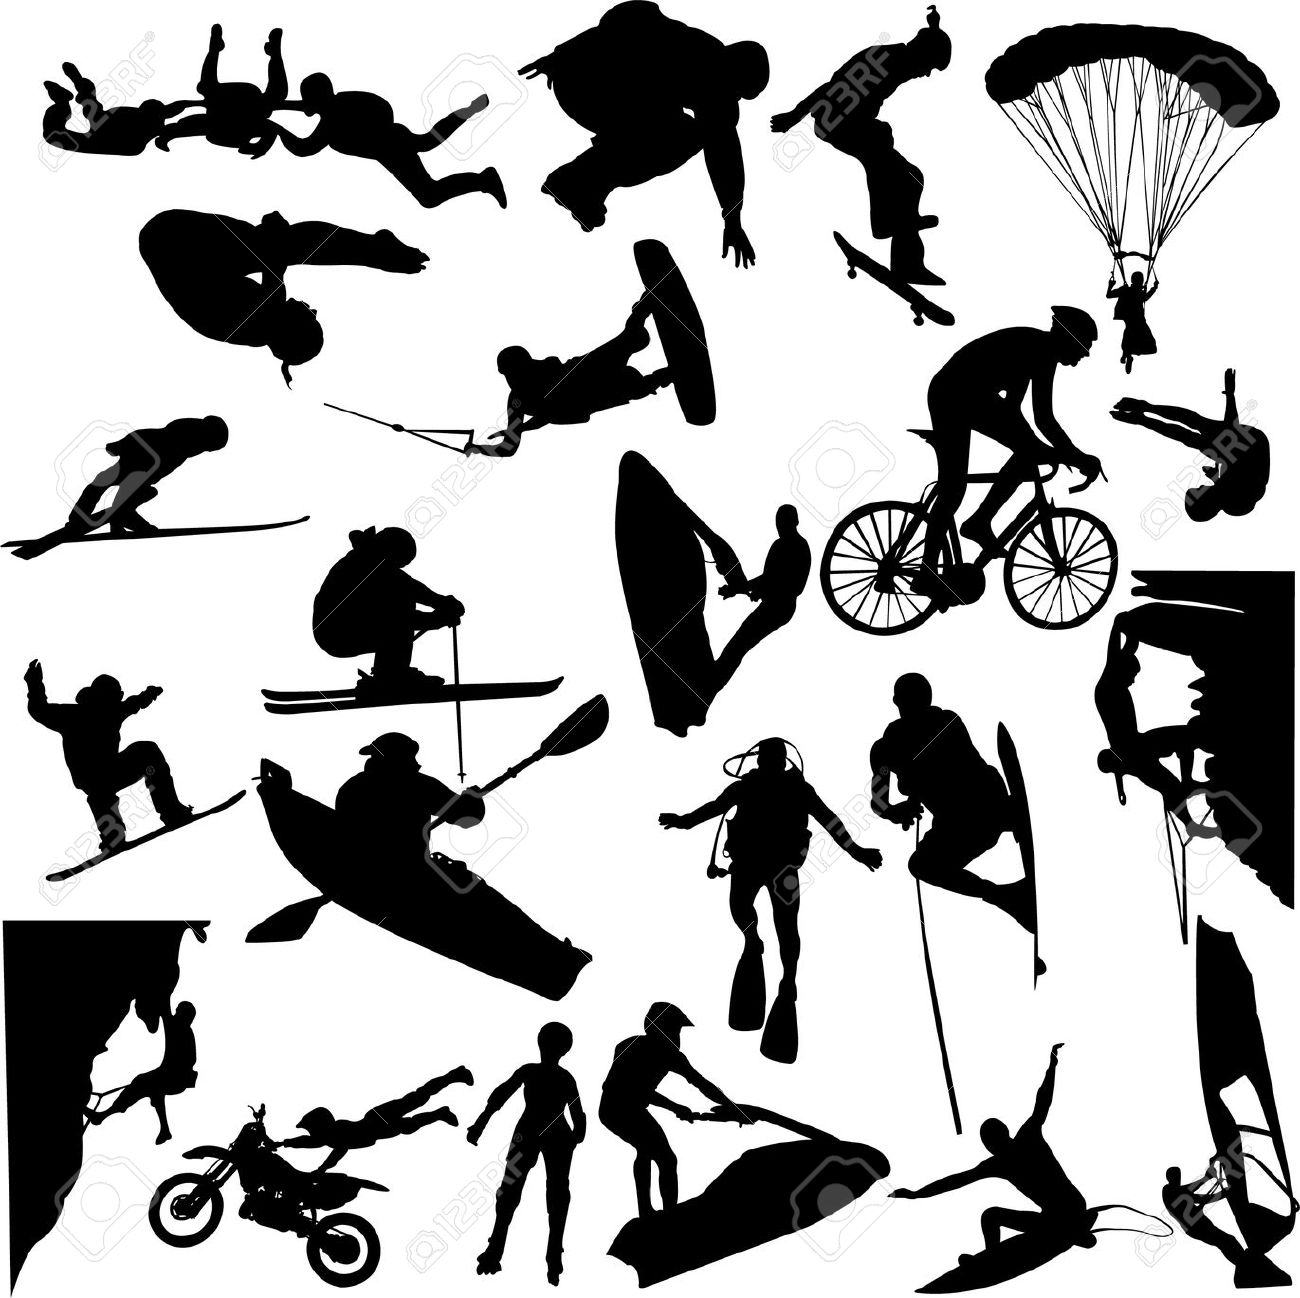 Extreme sports clipart free.